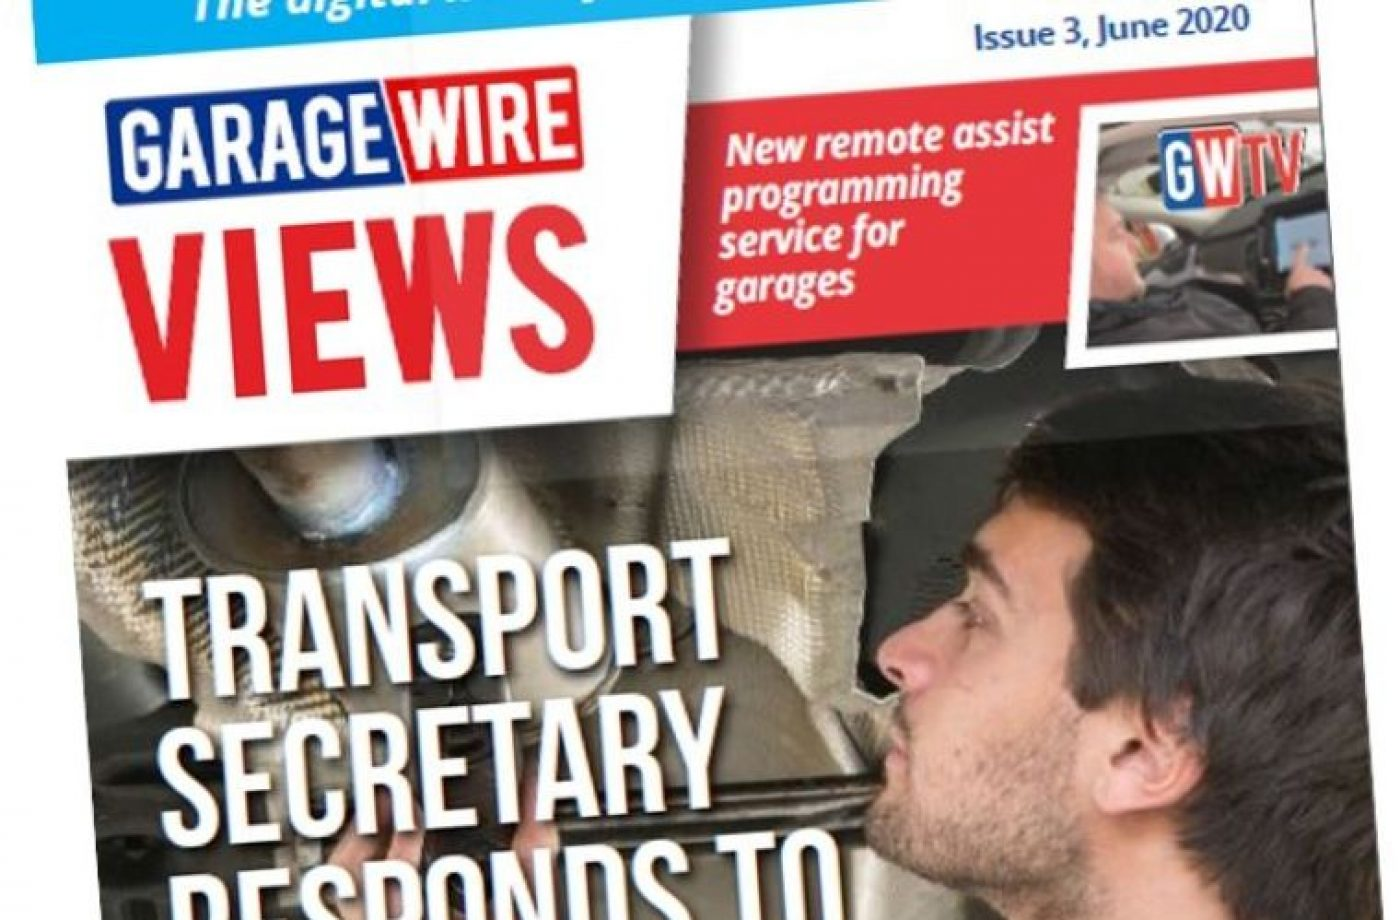 Six-month MOT reaction continues in latest GW Views issue as pressure for review mounts